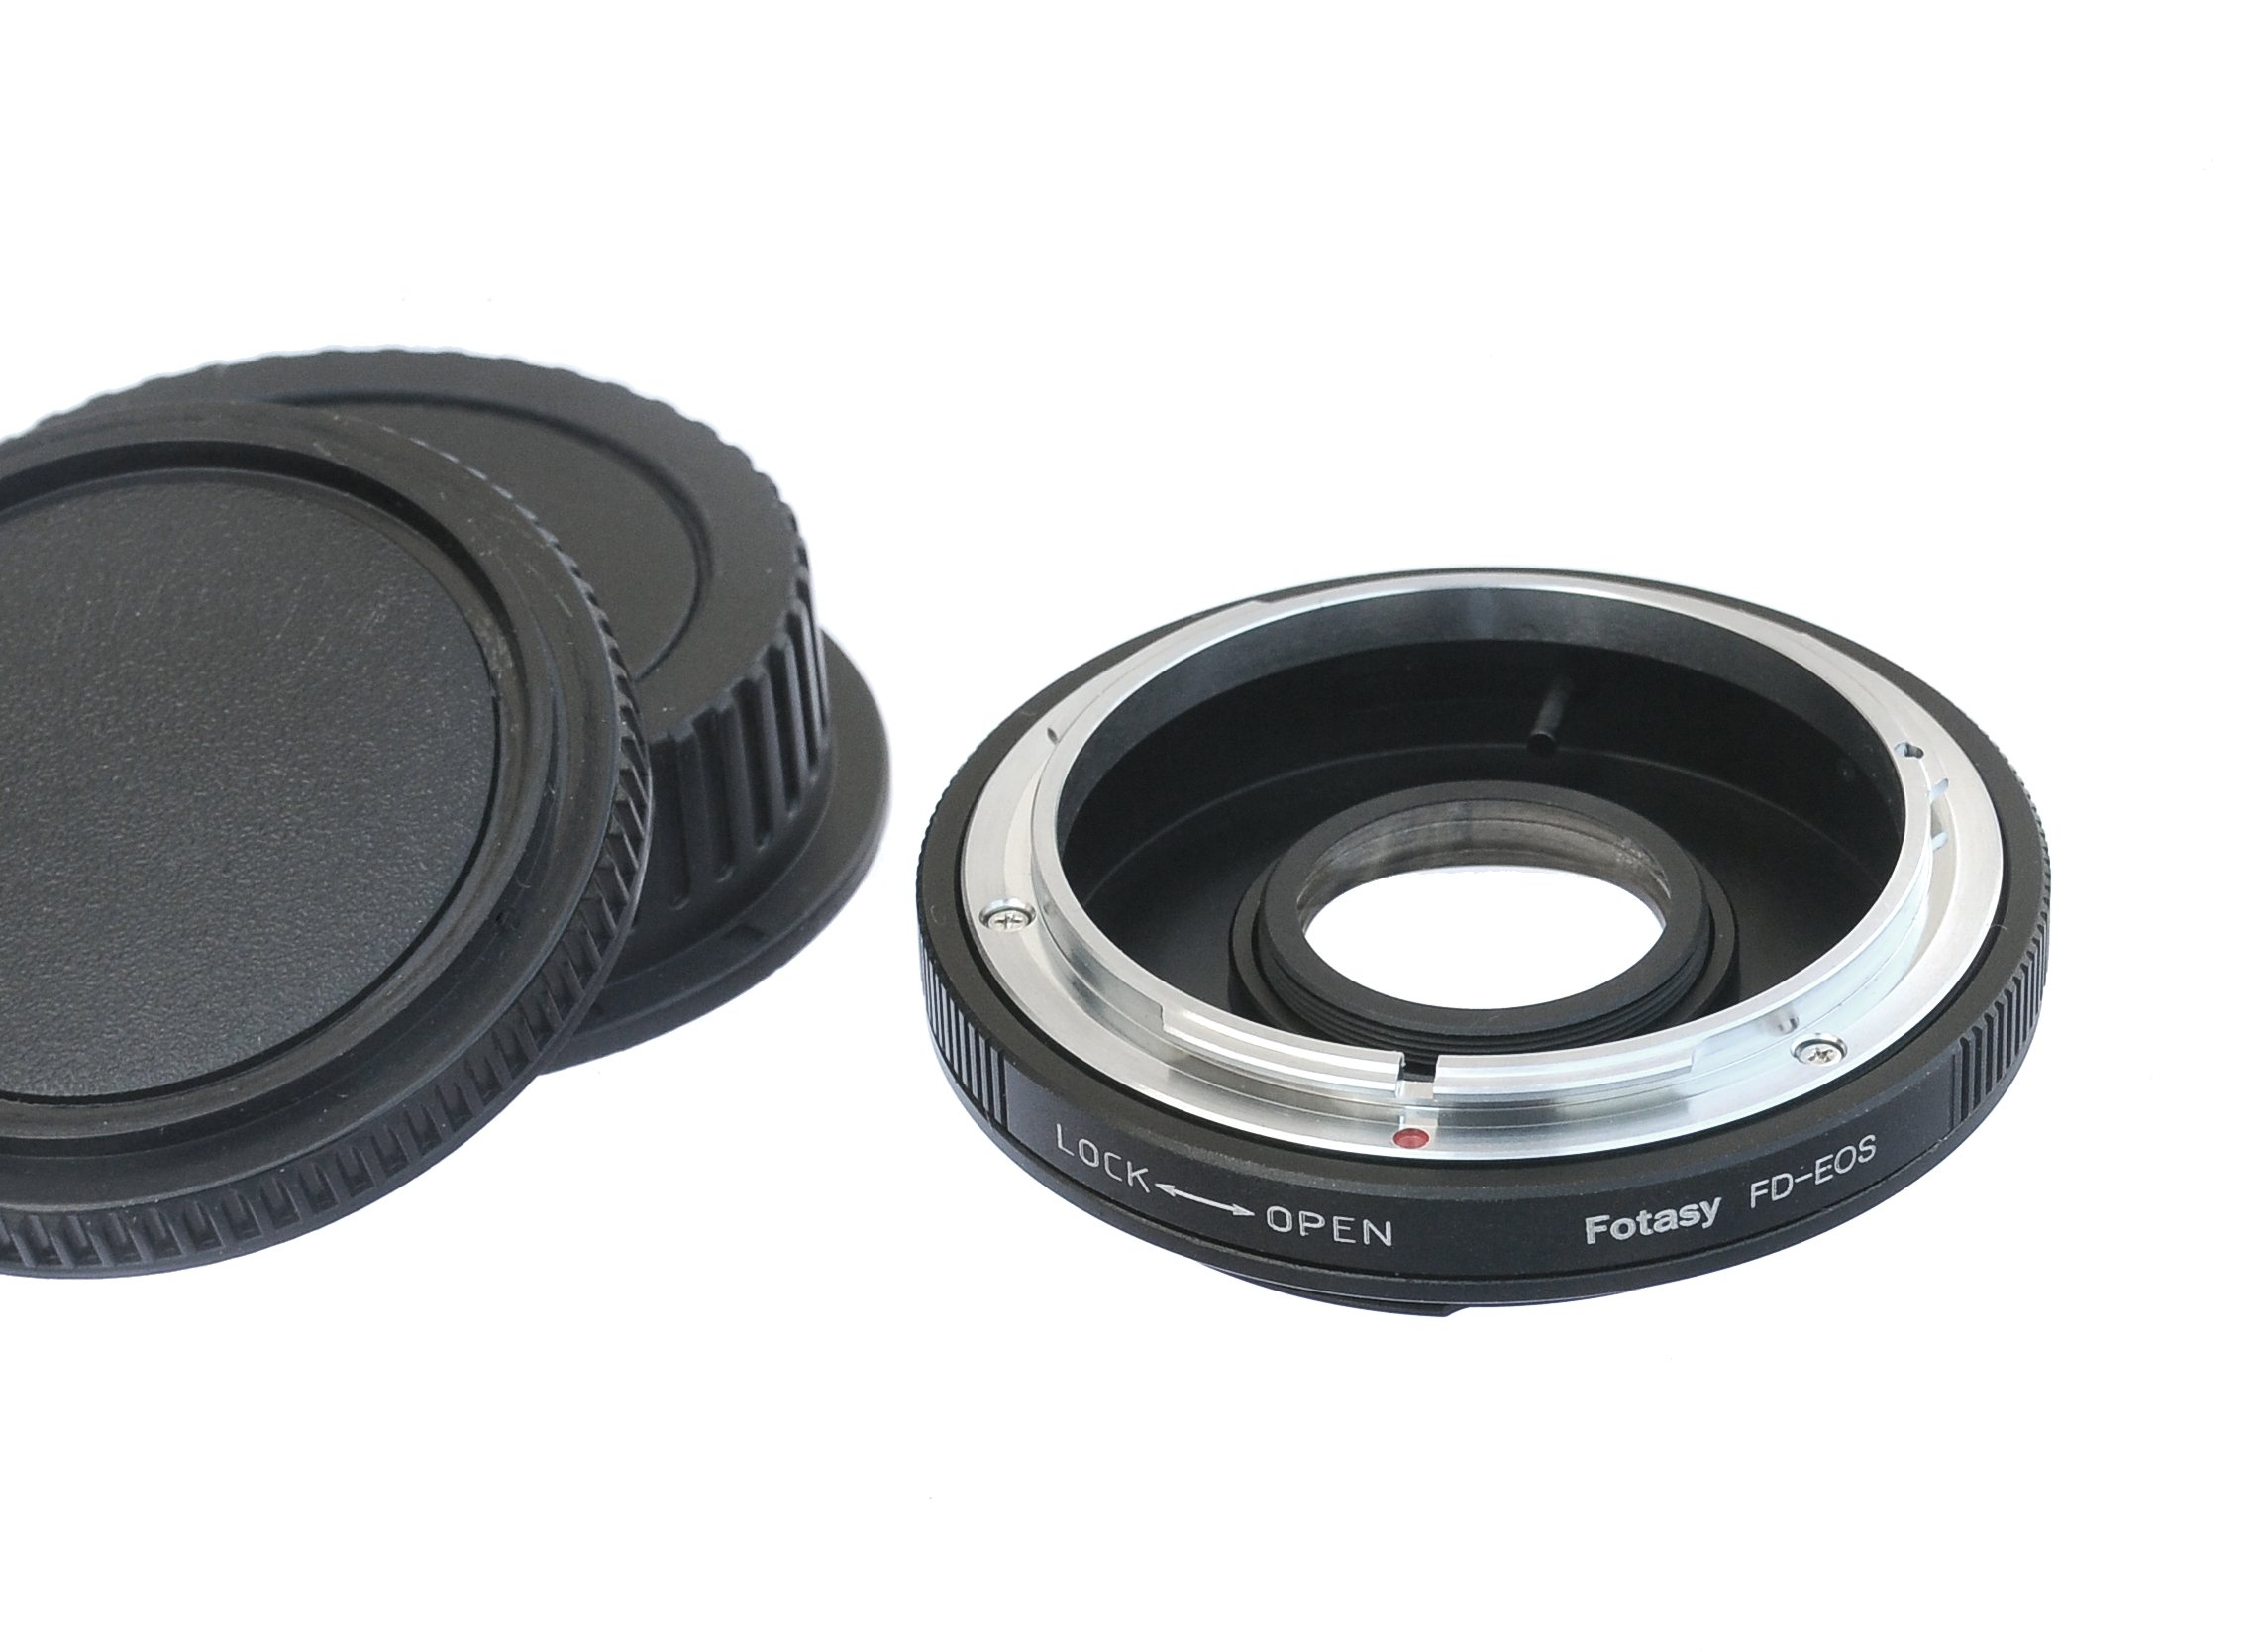 Fotasy Canon FD Lens to Canon Adapter, FD to Canon Adapter, Infinity Focus, Compatible with Canon DSLR 5D IV III II 1Ds 1D Series 7D II 7D 80D 70D 60D 50D 1300D 1200D 1100D 1000D 760D 750D 700D 650D by Fotasy